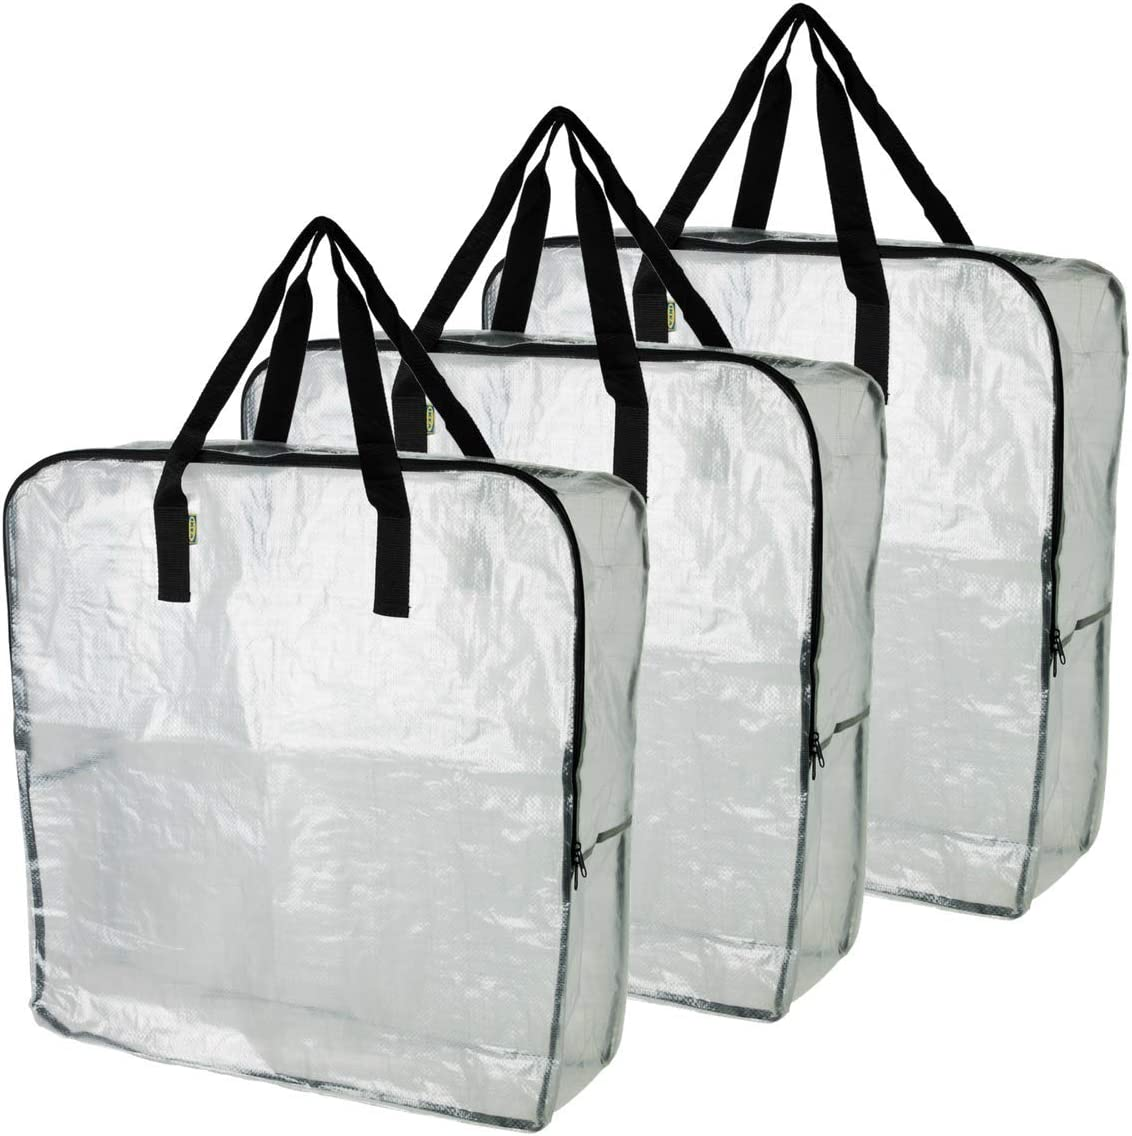 Ikea Dimpa 3 Pcs Extra Large Storage Bag Clear Heavy Duty Bags Moth Moisture Protection Storage Bags Home Kitchen